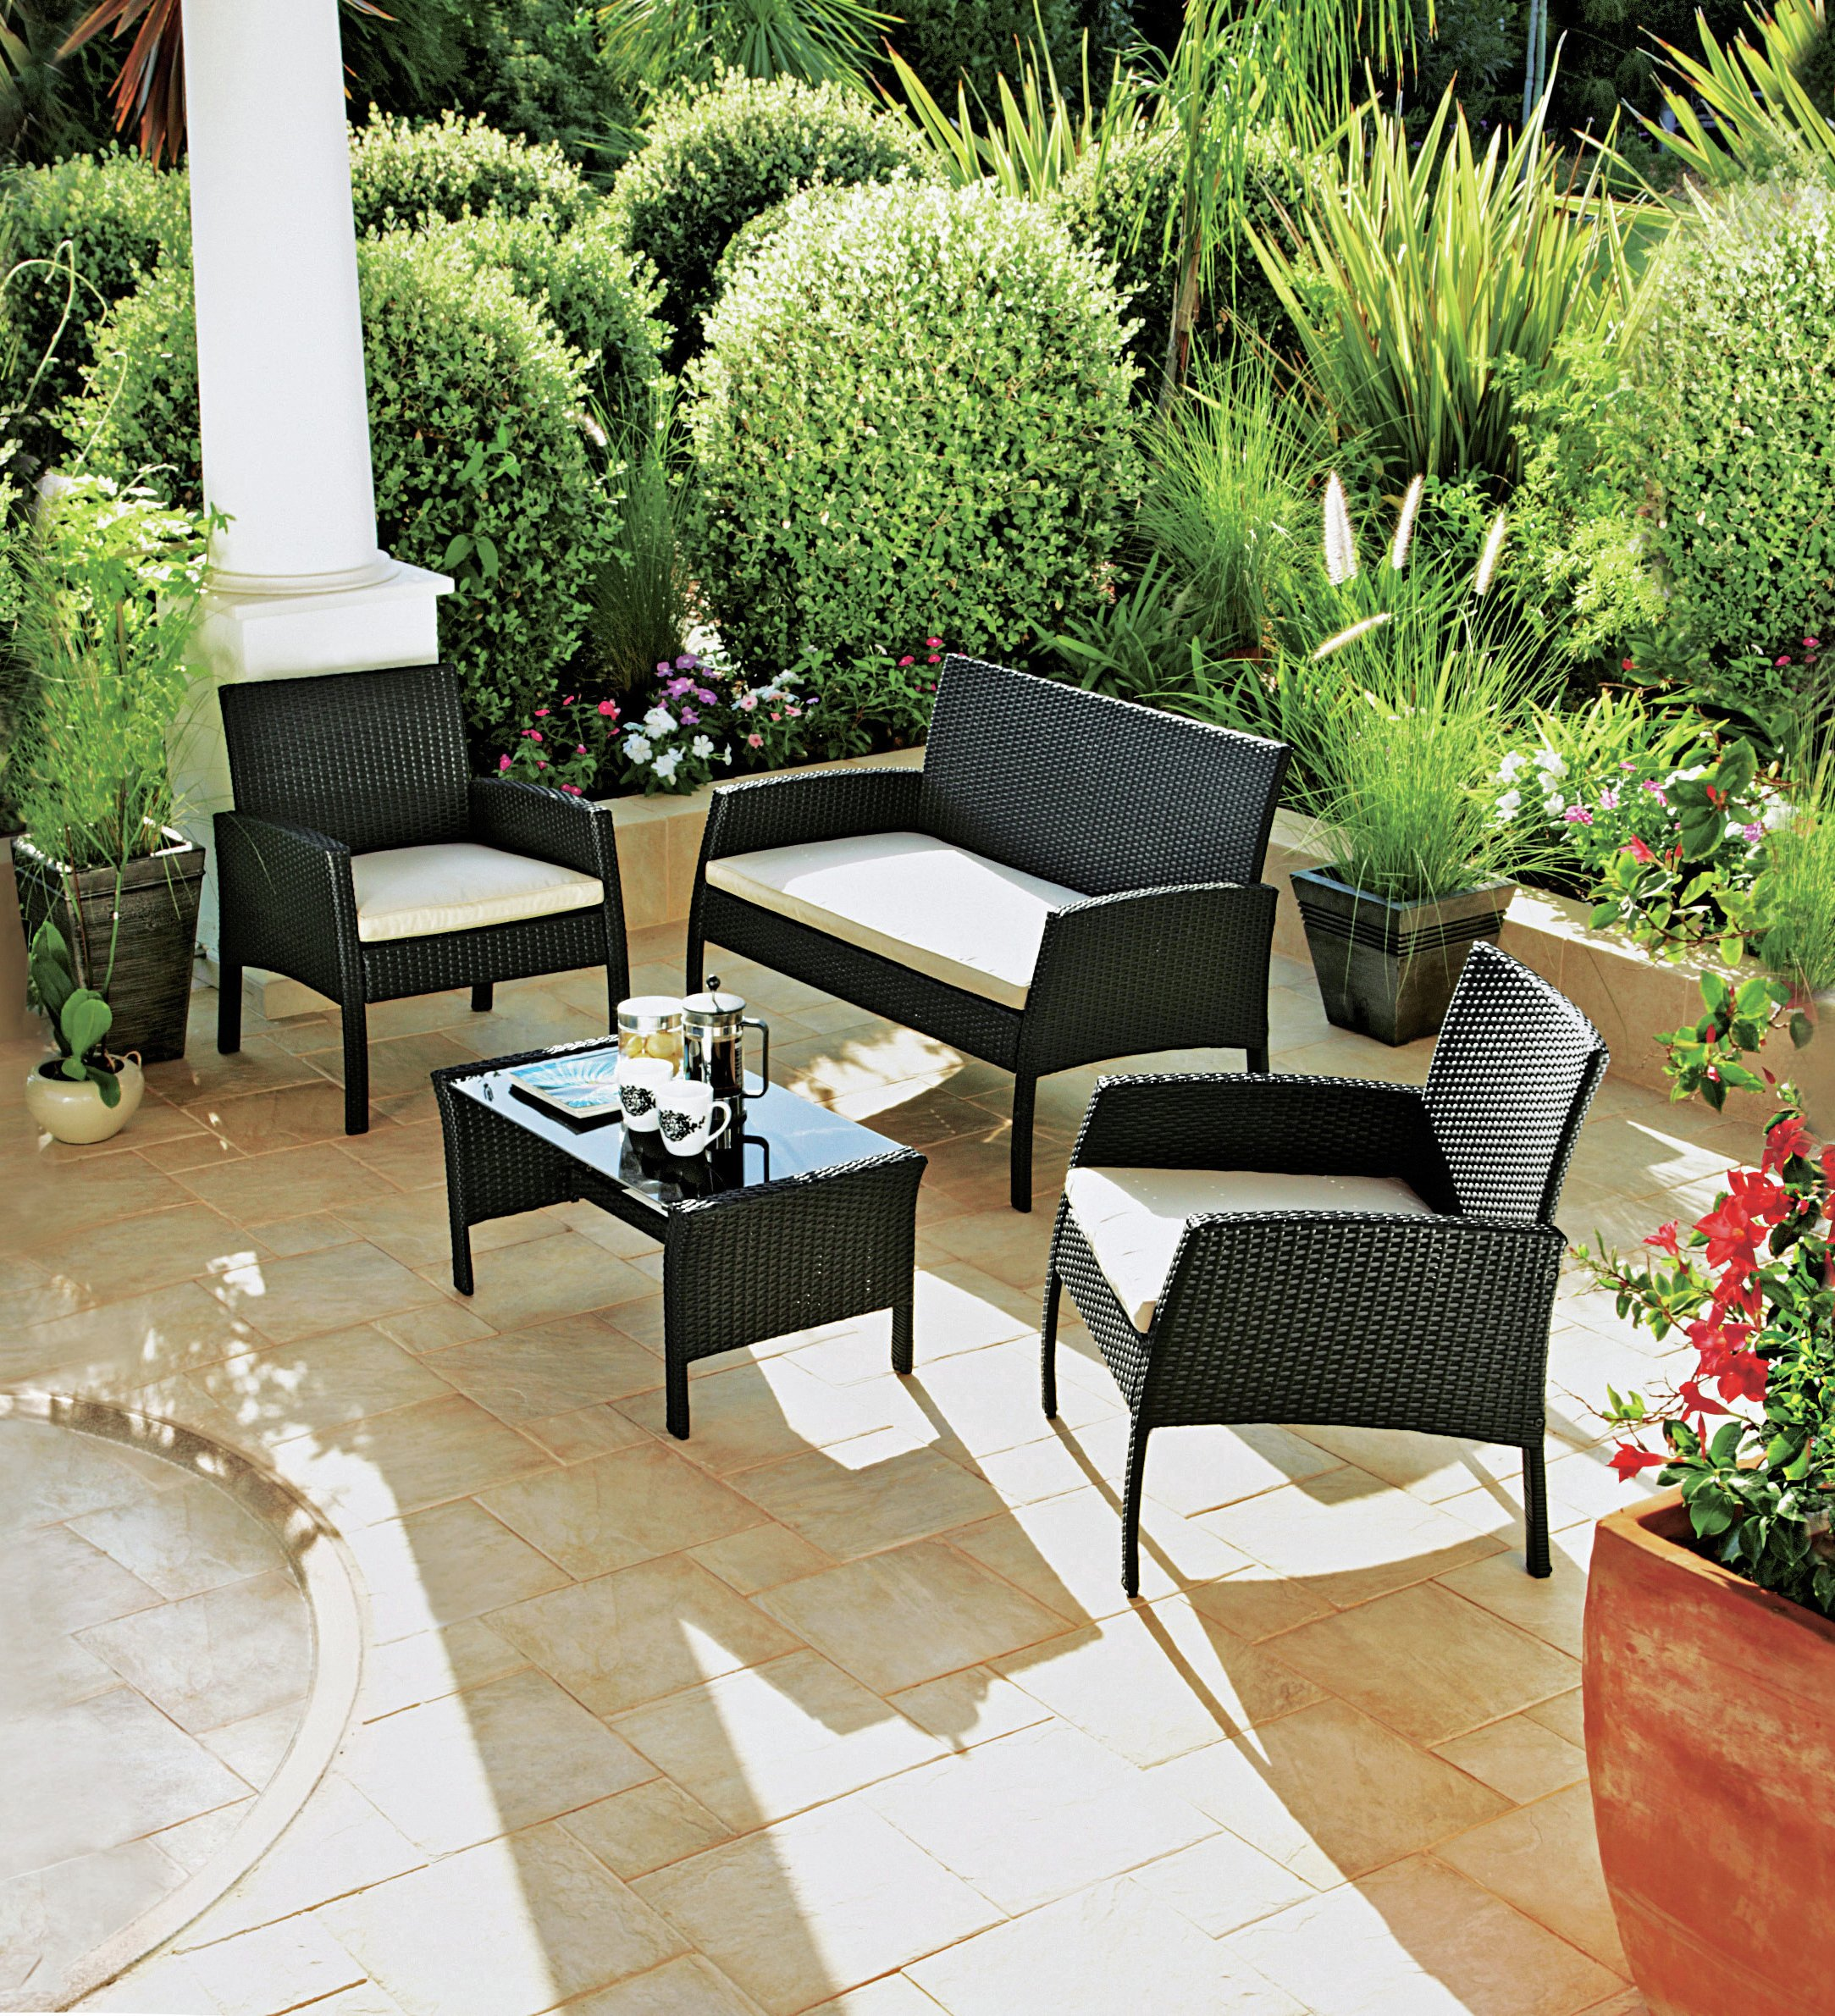 Buy Rattan Effect 4 Seater Garden Patio Furniture Set Black at